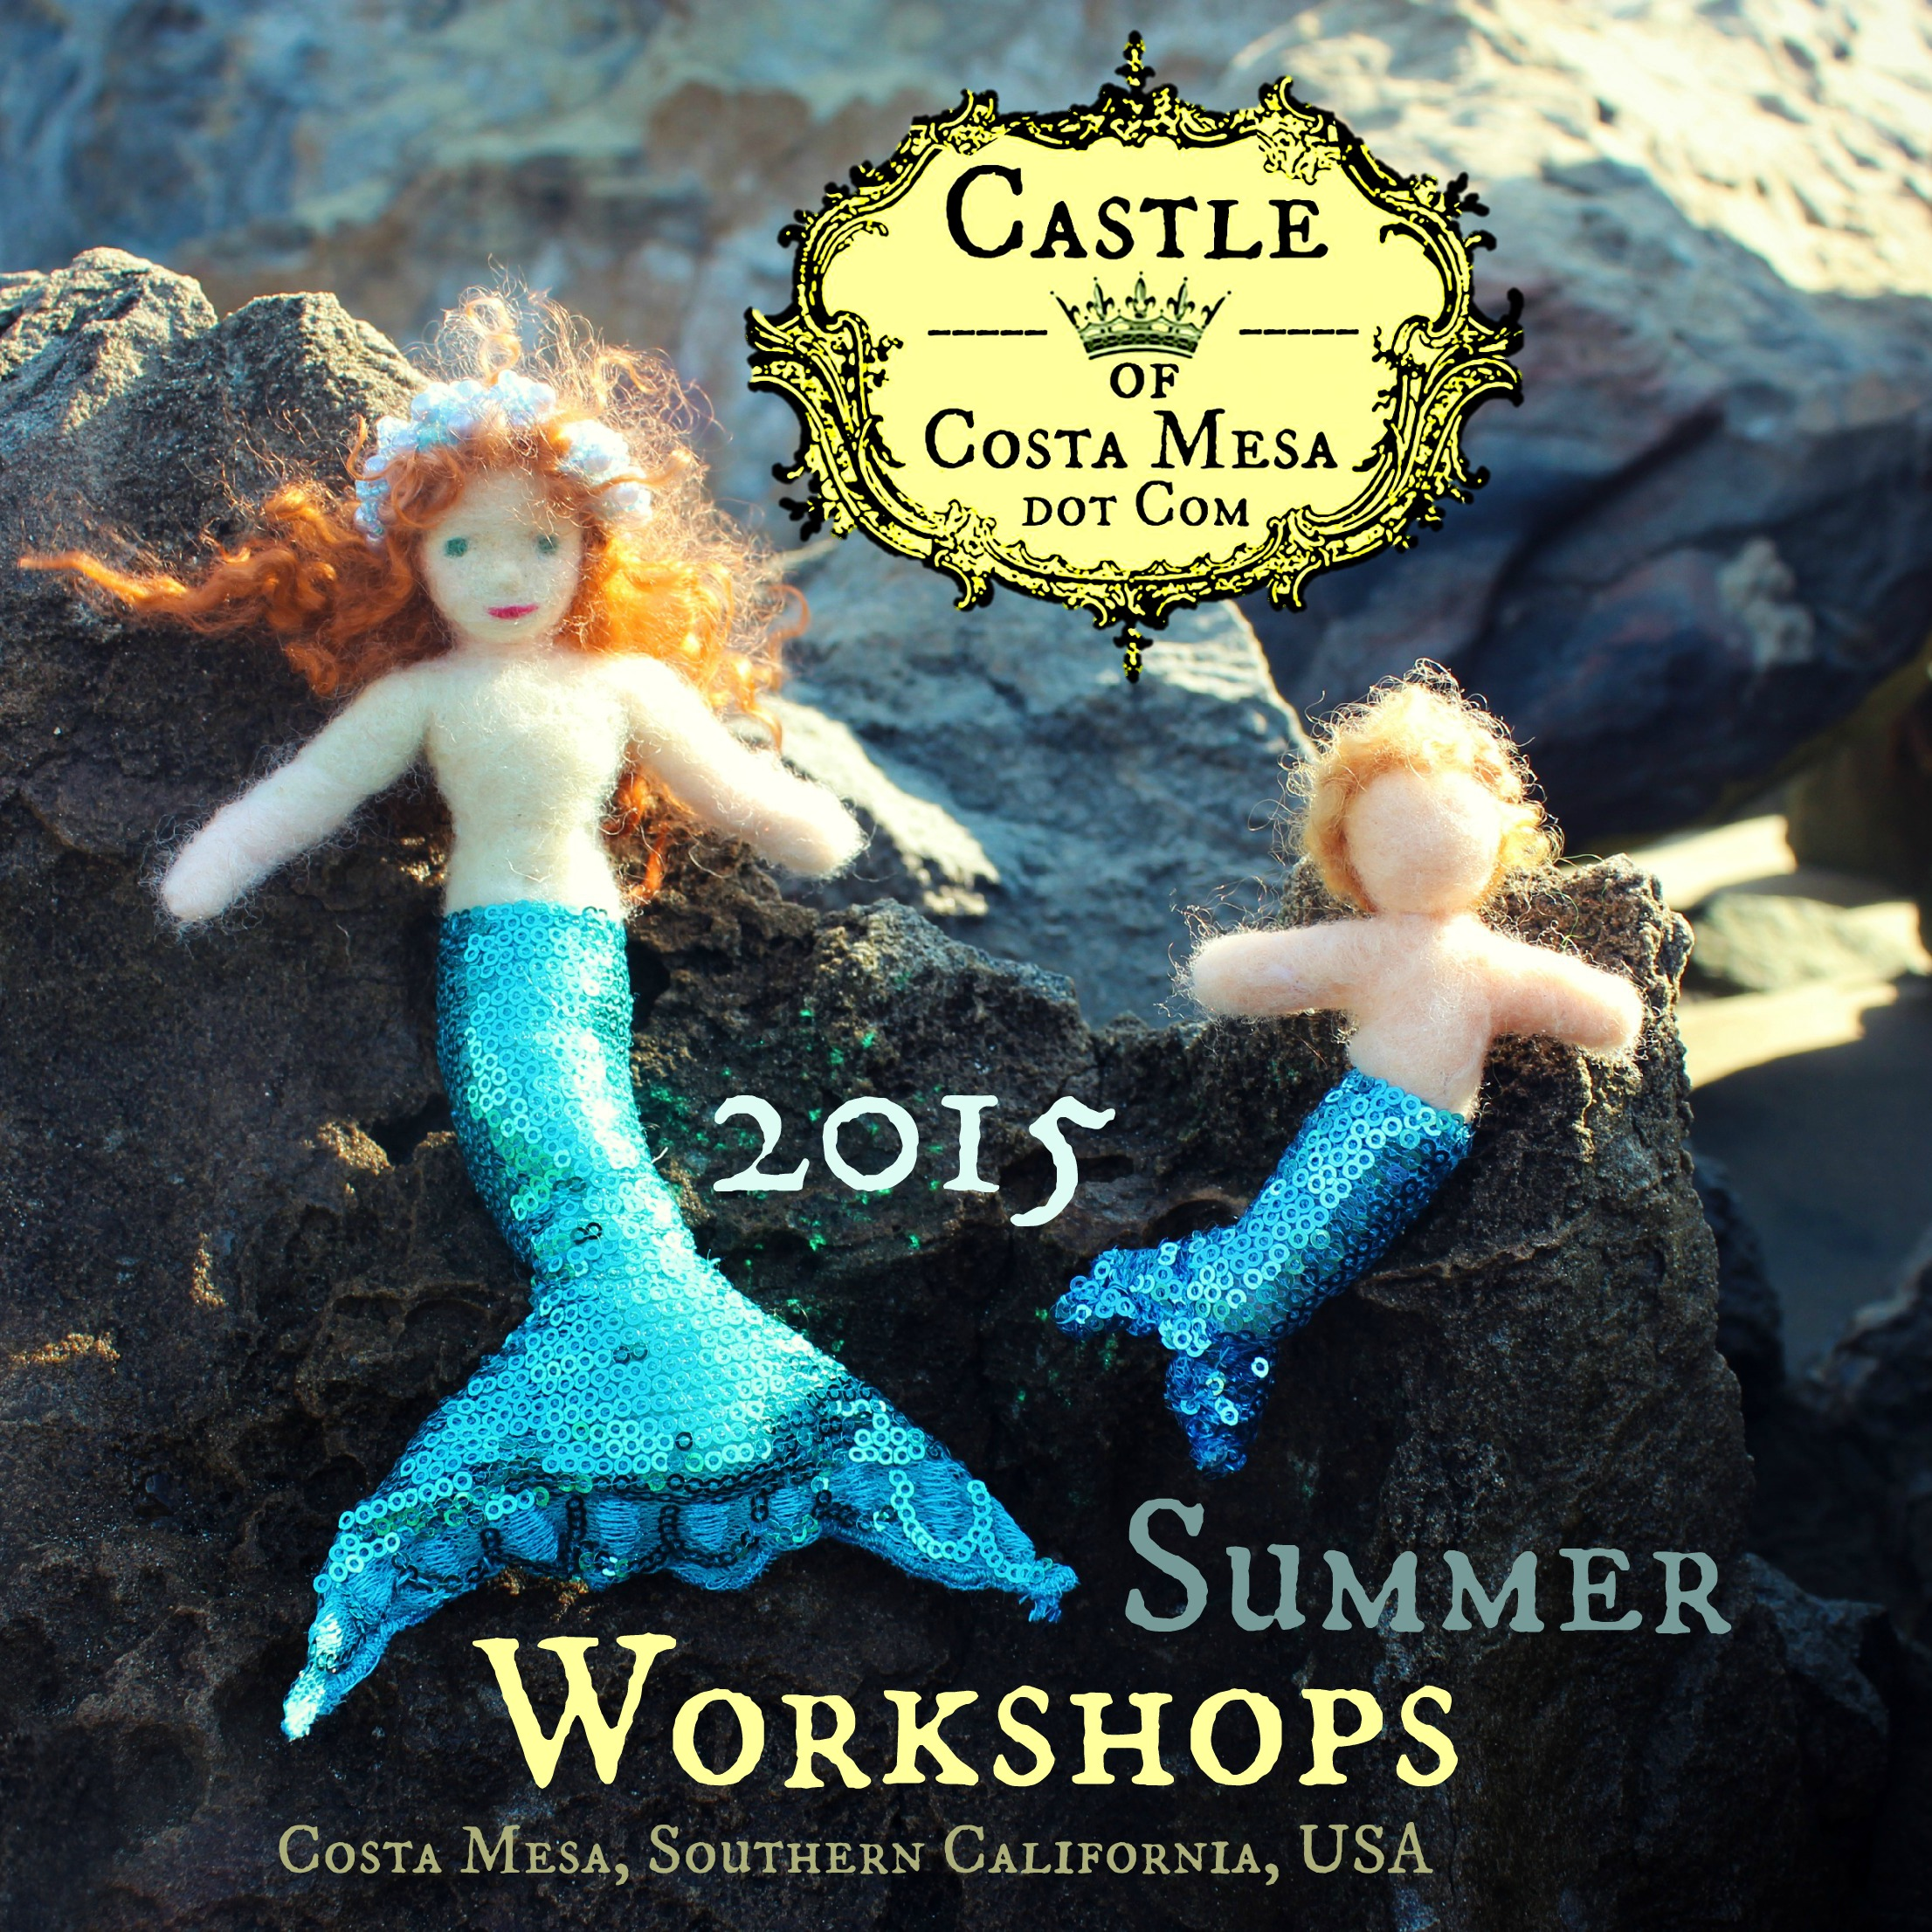 150423 Mermaid Georgian and merbaby 2015 Summer Workshops post.